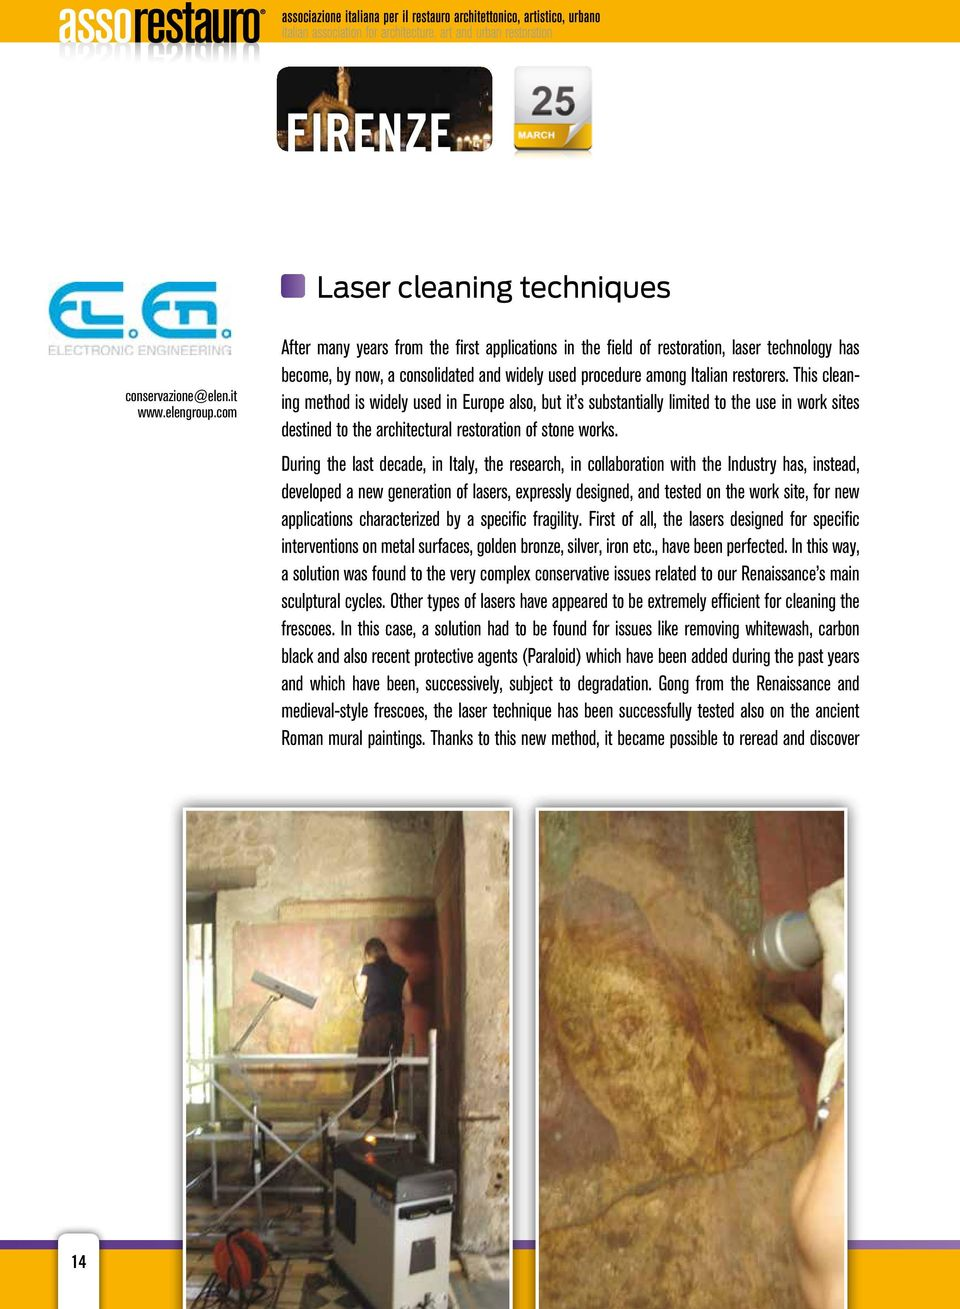 This cleaning method is widely used in Europe also, but it s substantially limited to the use in work sites destined to the architectural restoration of stone works.